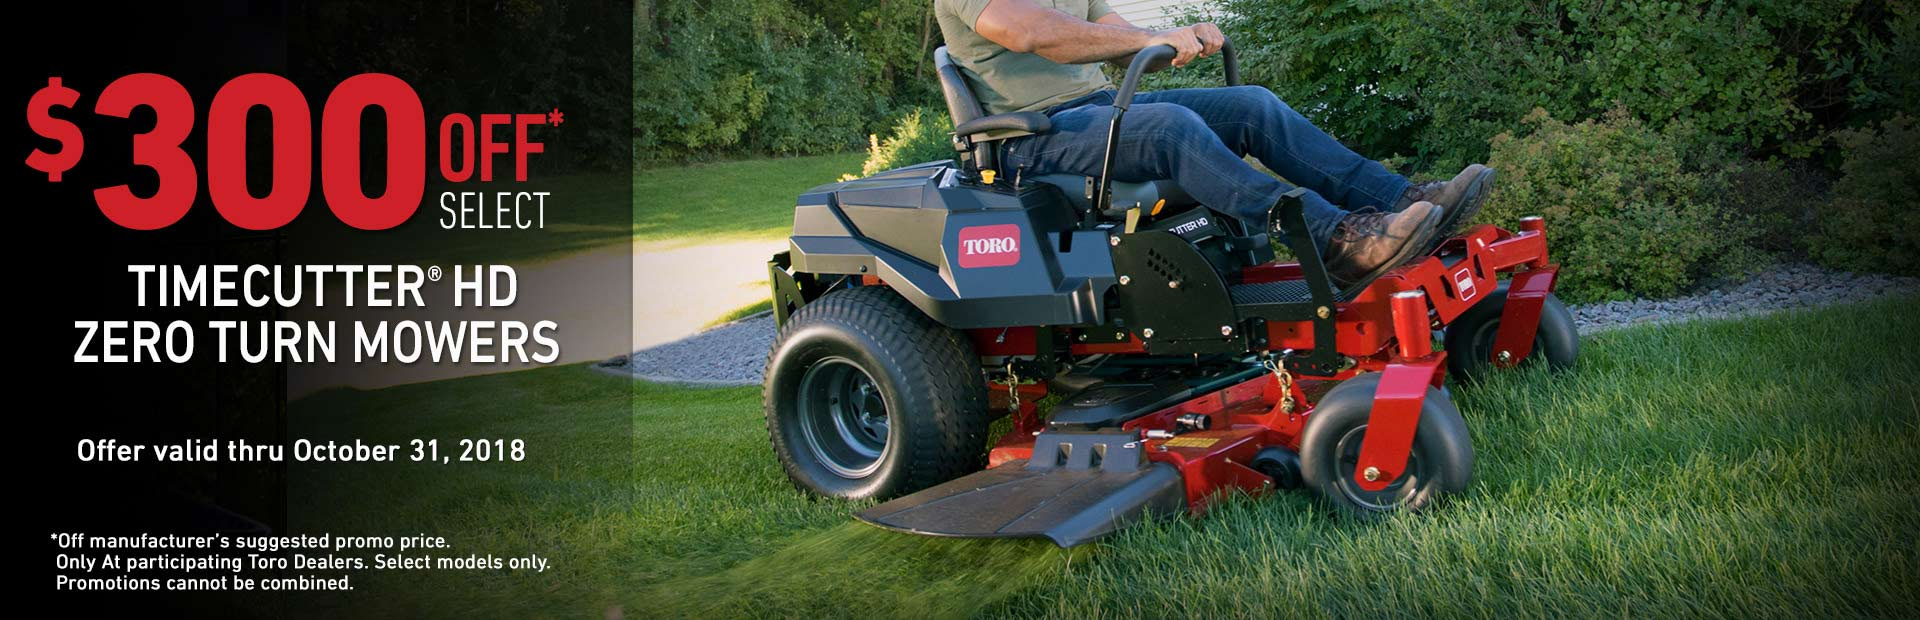 Toro: $300 Off Select TimeCutter HD Mowers